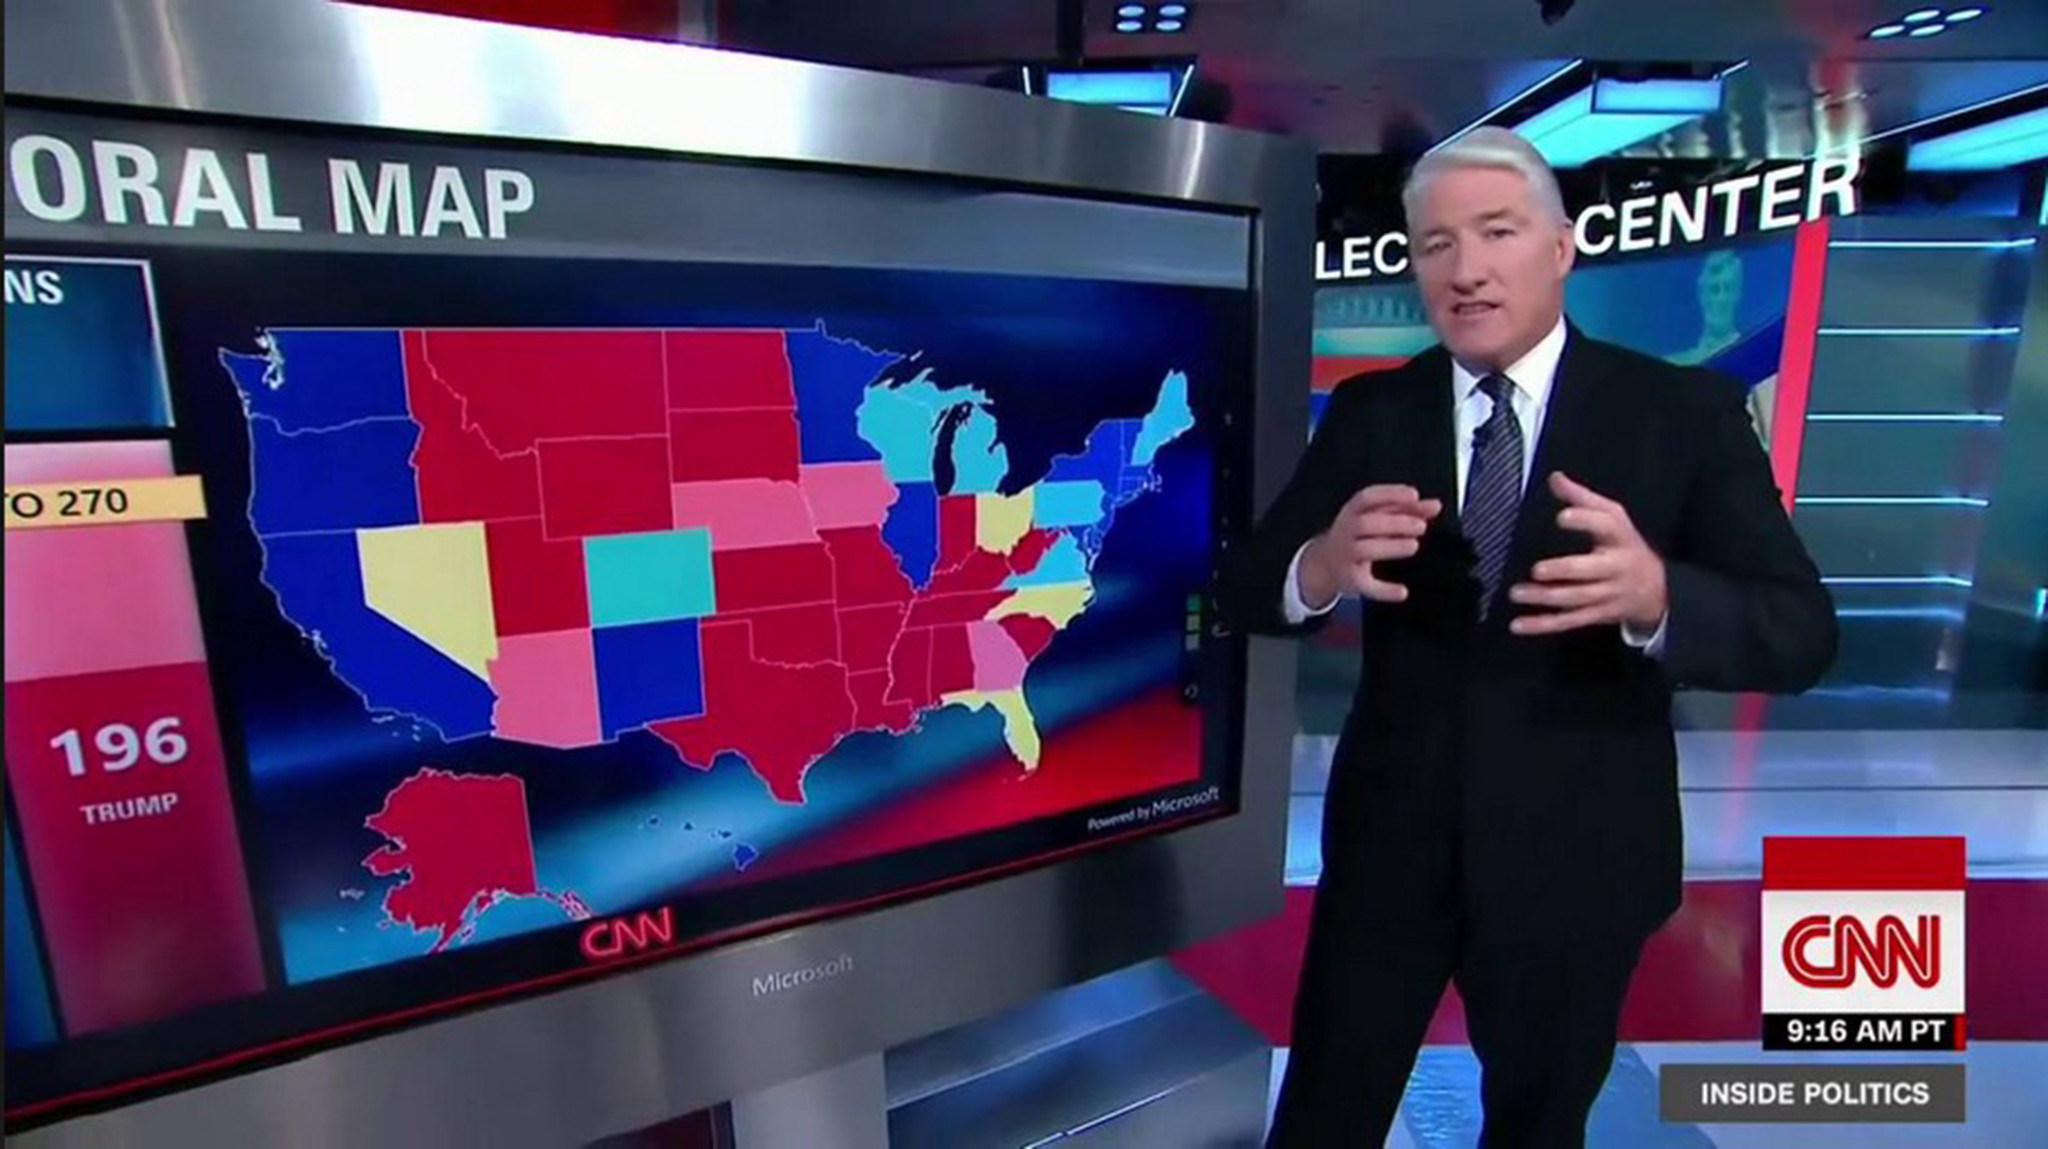 Why the 'excellent' Electoral College is well worth keeping